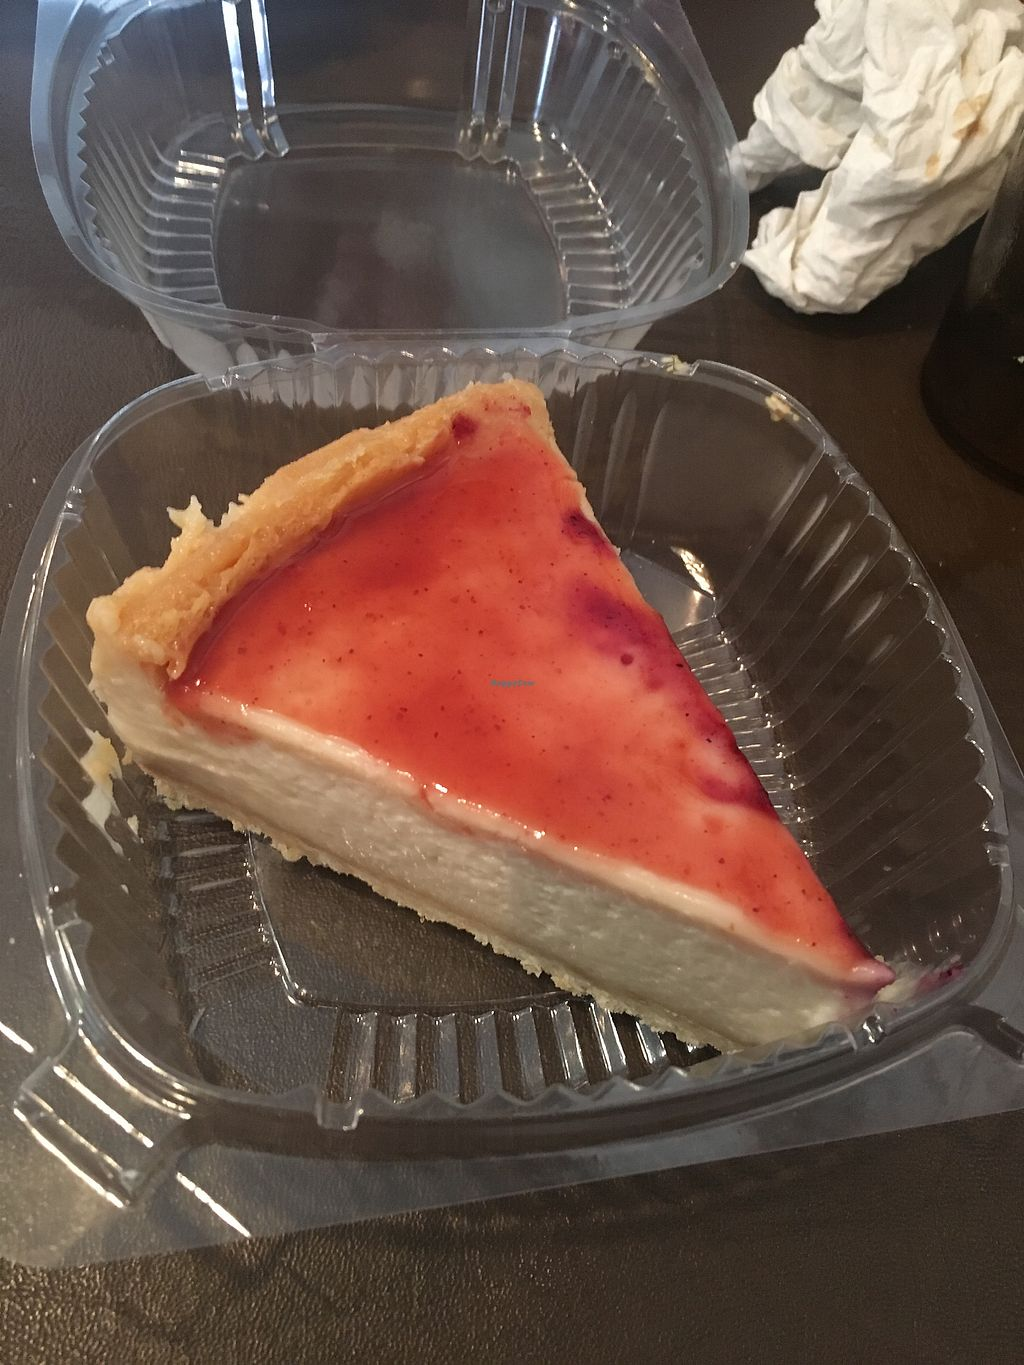 "Photo of NuVegan  by <a href=""/members/profile/mem2024"">mem2024</a> <br/>Strawberry cheesecake - couldn't believe it was vegan <br/> April 8, 2018  - <a href='/contact/abuse/image/1790/382630'>Report</a>"